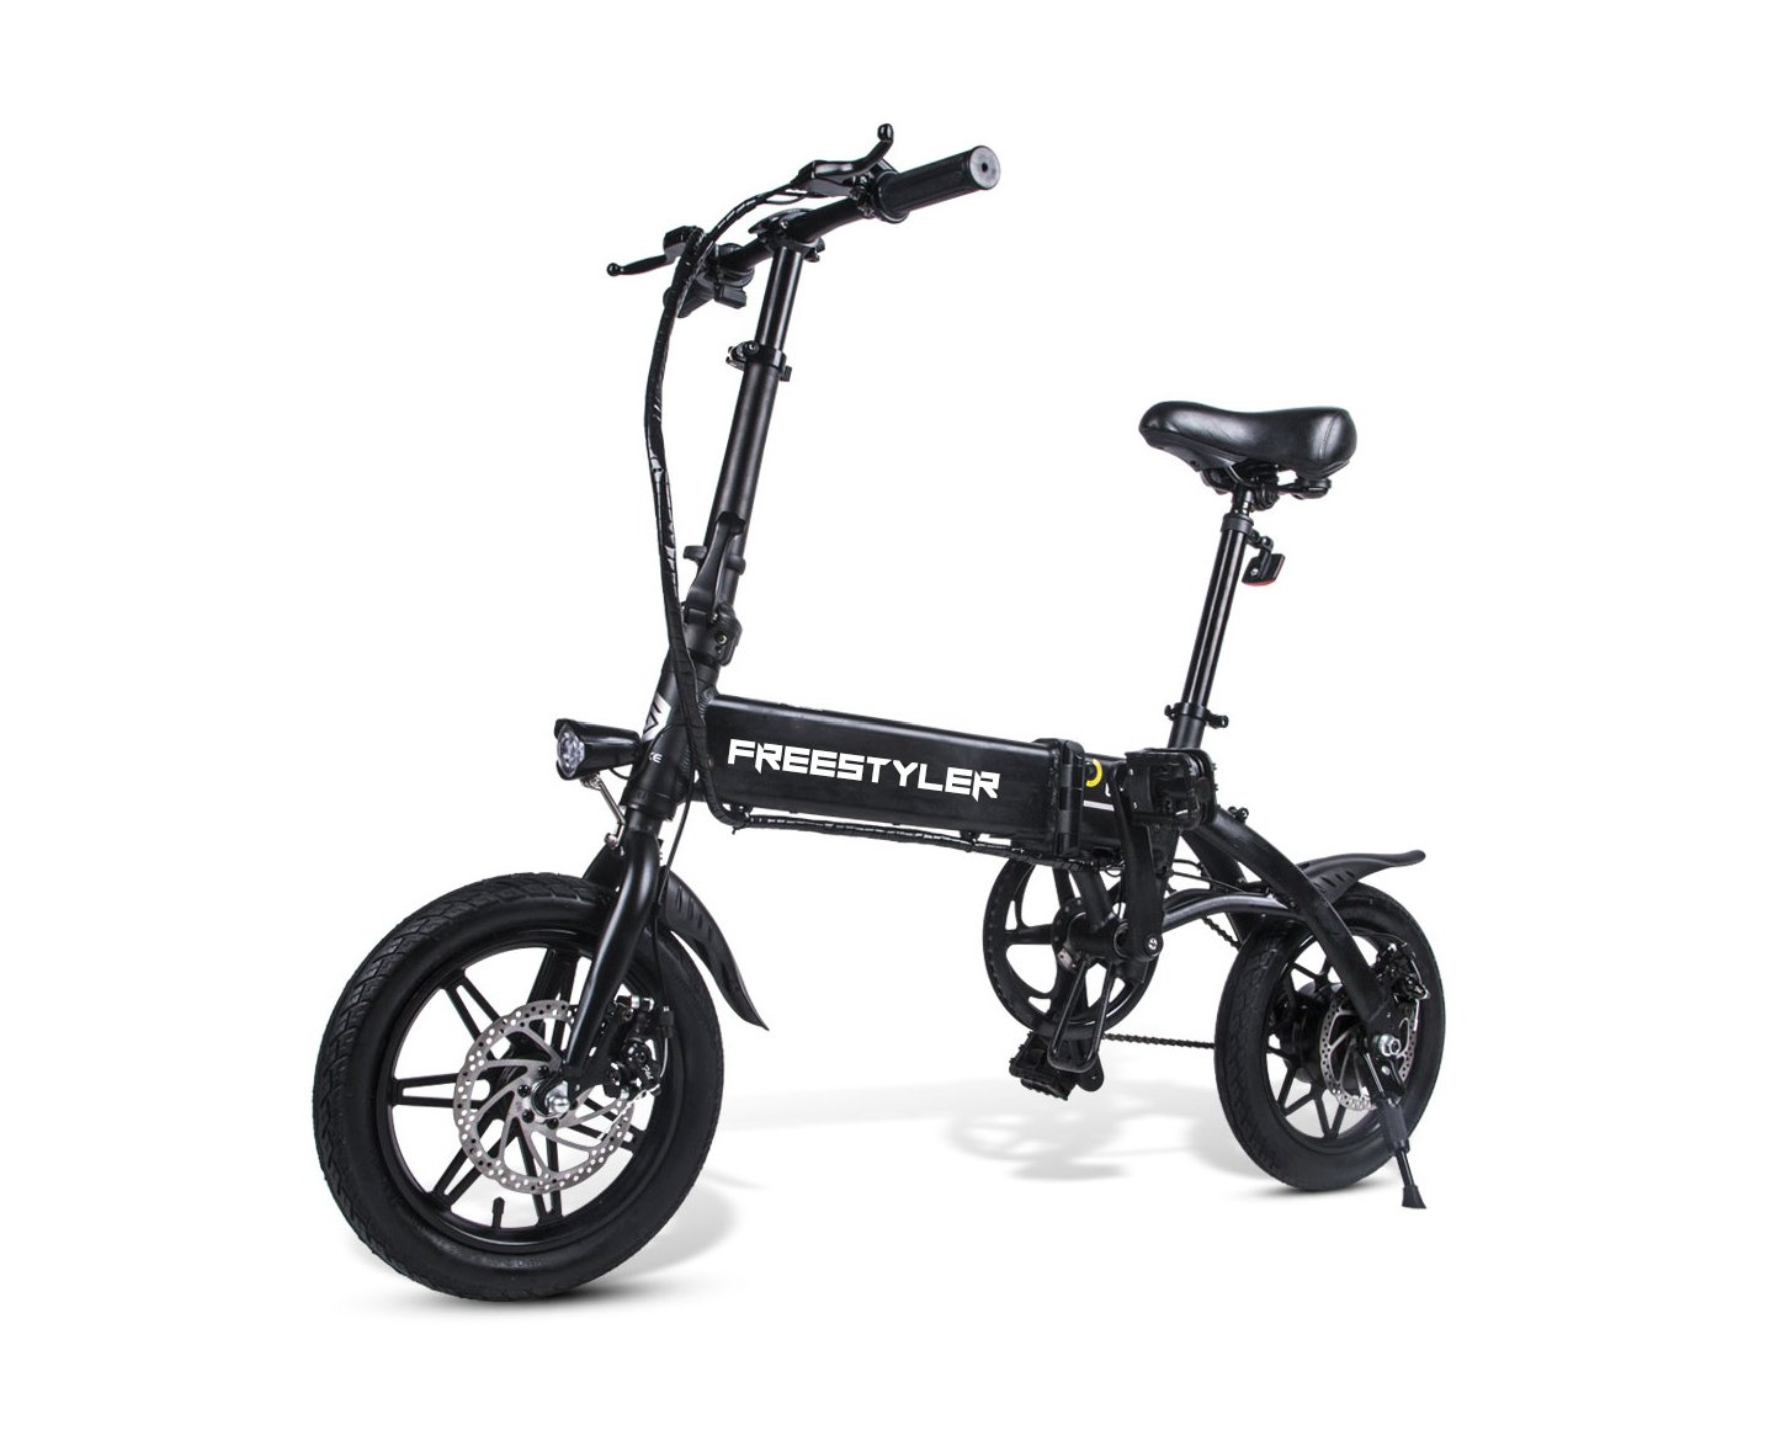 Freestyler | Electric Folding Bike